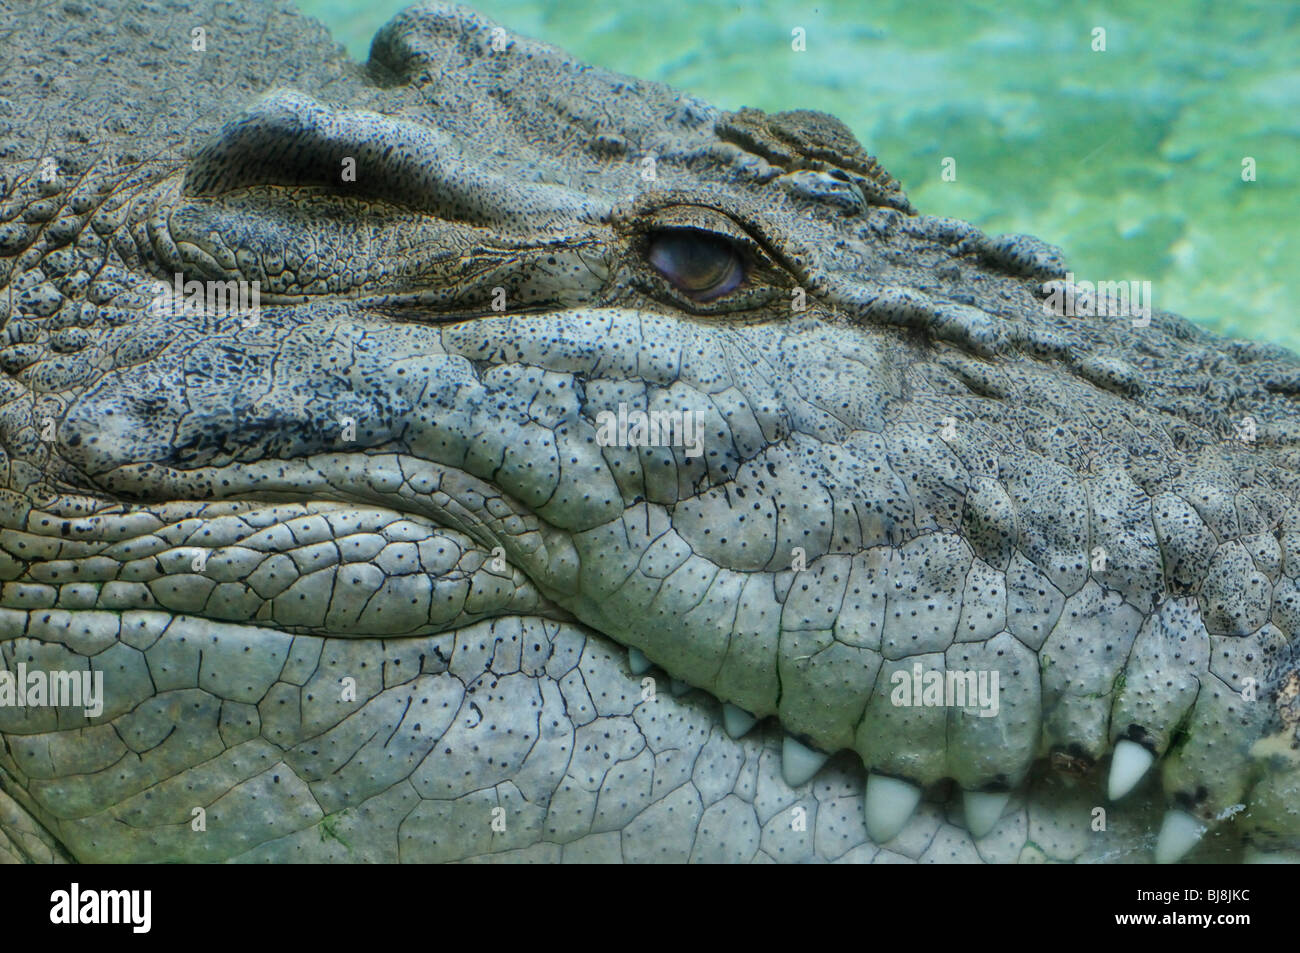 Part of the head of a large saltwater crocodile (Crocodylus porosus) displayed at the Alligator Farm, St. Augustine, - Stock Image